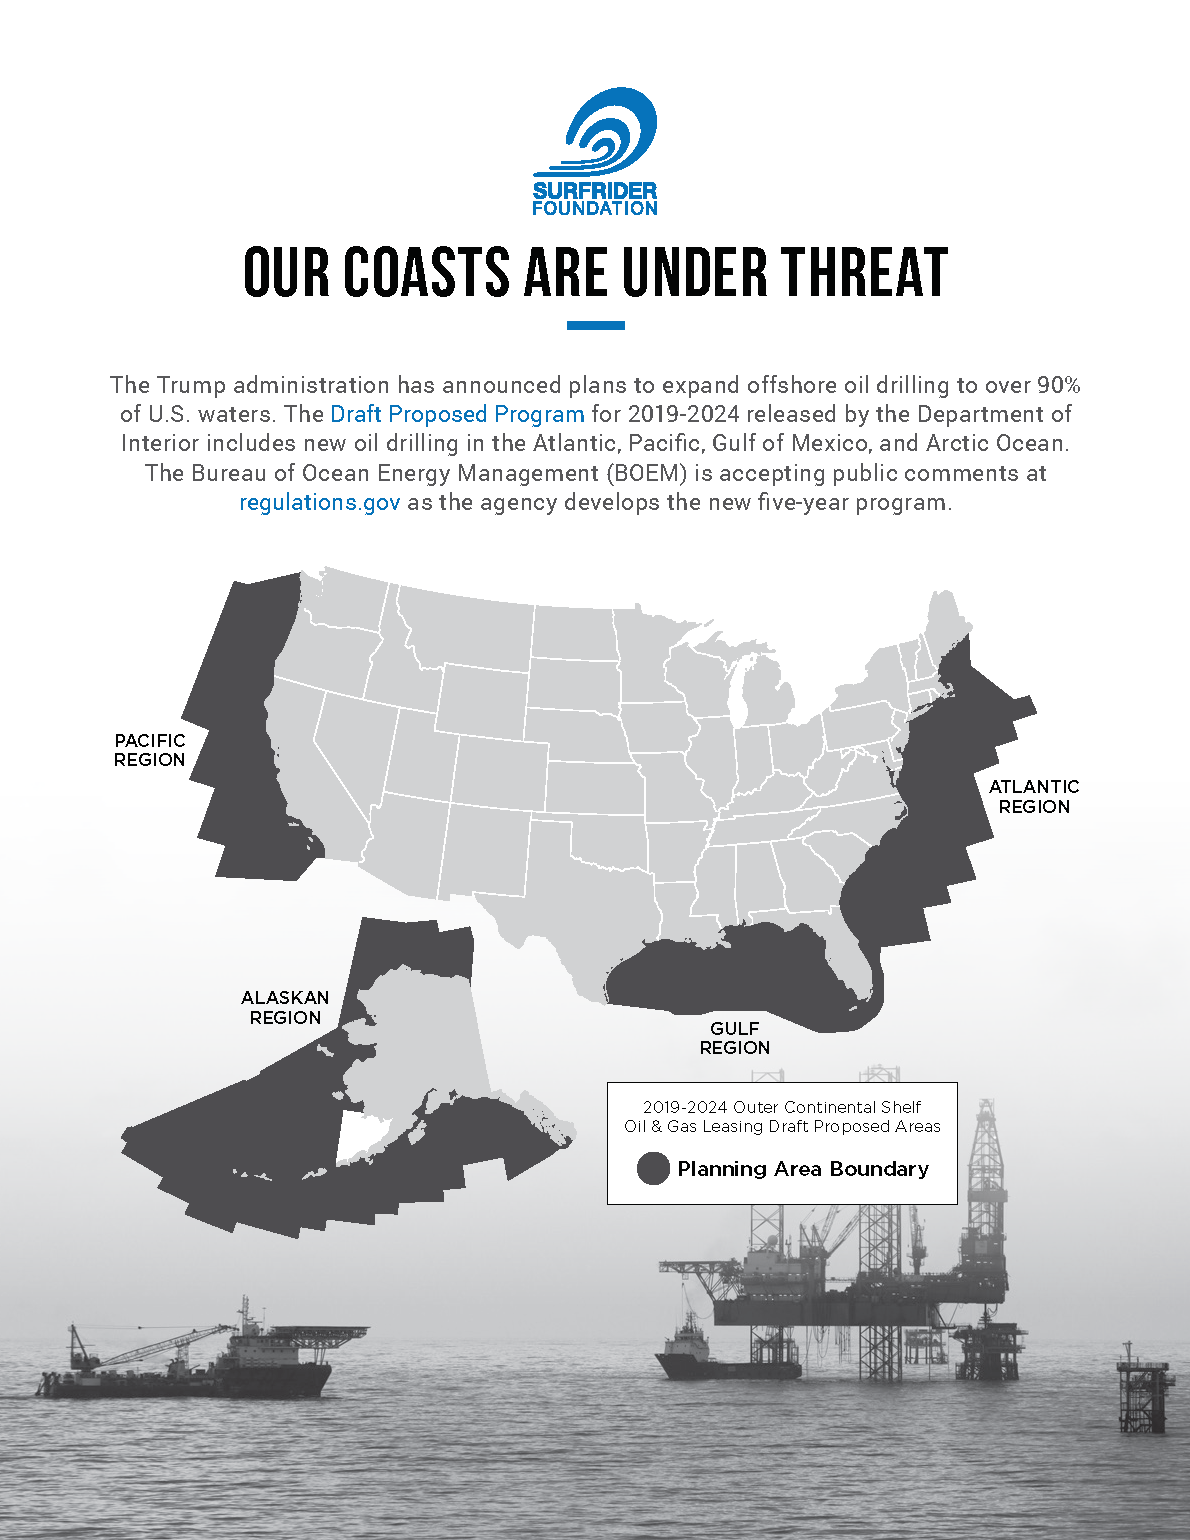 Surfrider-Offshore-Drilling-FactSheet-2018_Page_1